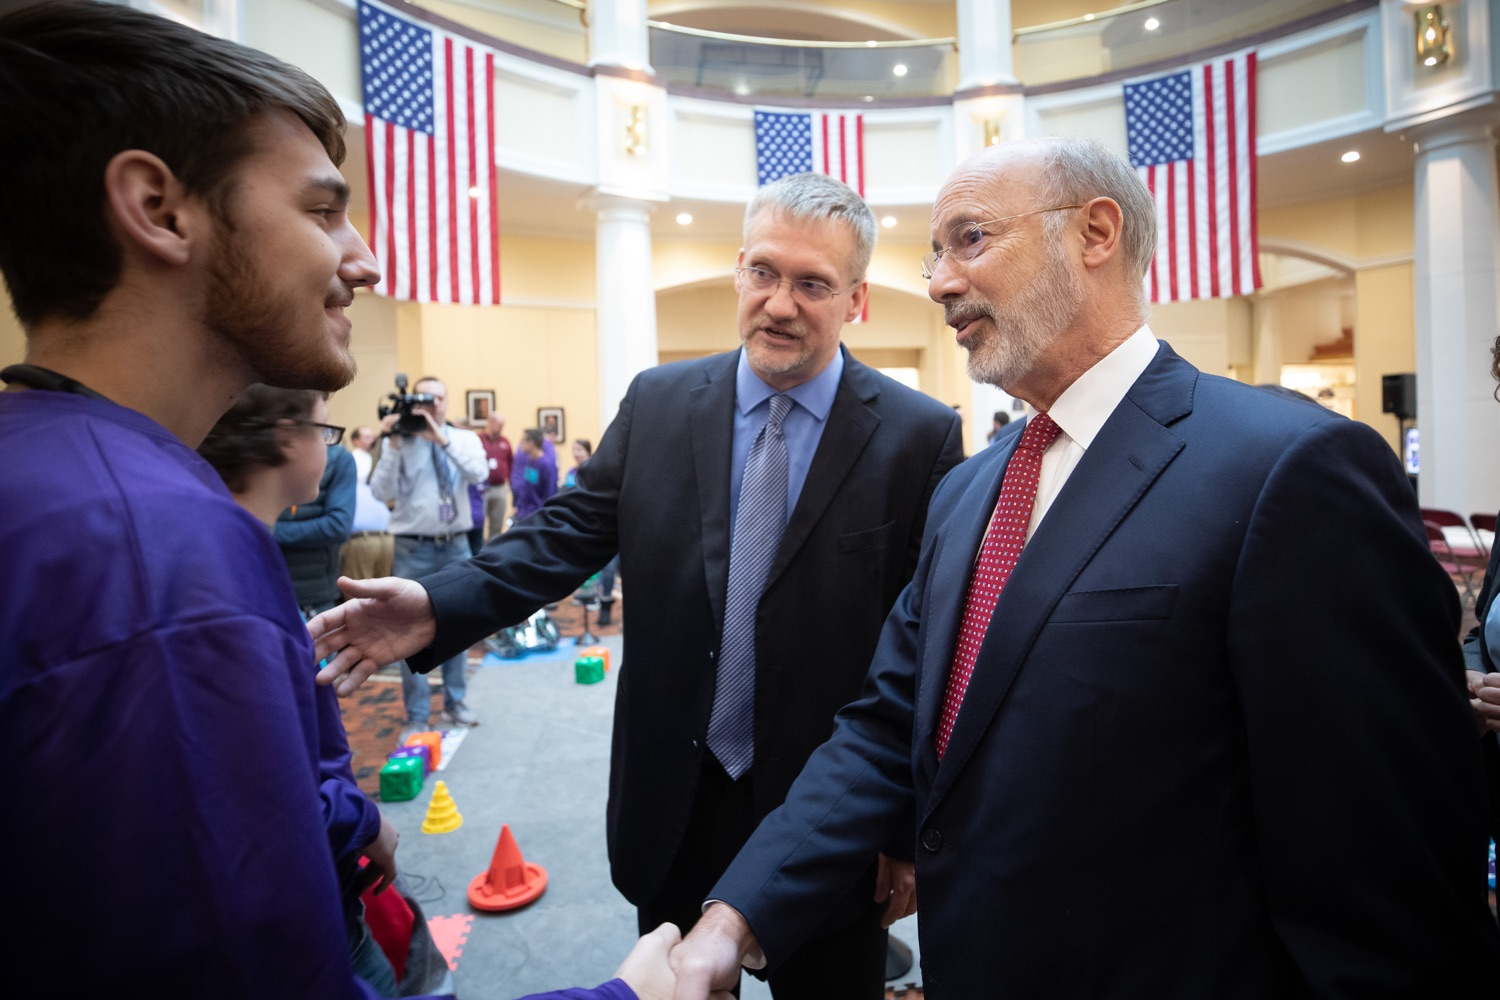 """<a href=""""https://filesource.wostreaming.net/commonwealthofpa/photo/17587_gov_pasmart_rural_robotics_dz_022.jpg"""" target=""""_blank"""">⇣Download Photo<br></a>Pennsylvania Governor Tom Wolf meeting with students at the robotics demonstration.Celebrating the success of the PAsmart workforce development program to create educational opportunities at schools across the commonwealth, Governor Tom Wolf welcomed more than 50 students from the Pennsylvania Rural Robotics Initiative to the Capitol today. The students from nine western Pennsylvania school districts showcased their skills in coding, robotics and drone technology. The Wolf administration awarded the initiative a $299,000 PAsmart Advancing Grant earlier this year. Harrisburg, PA  Tuesday, November 12, 2019"""